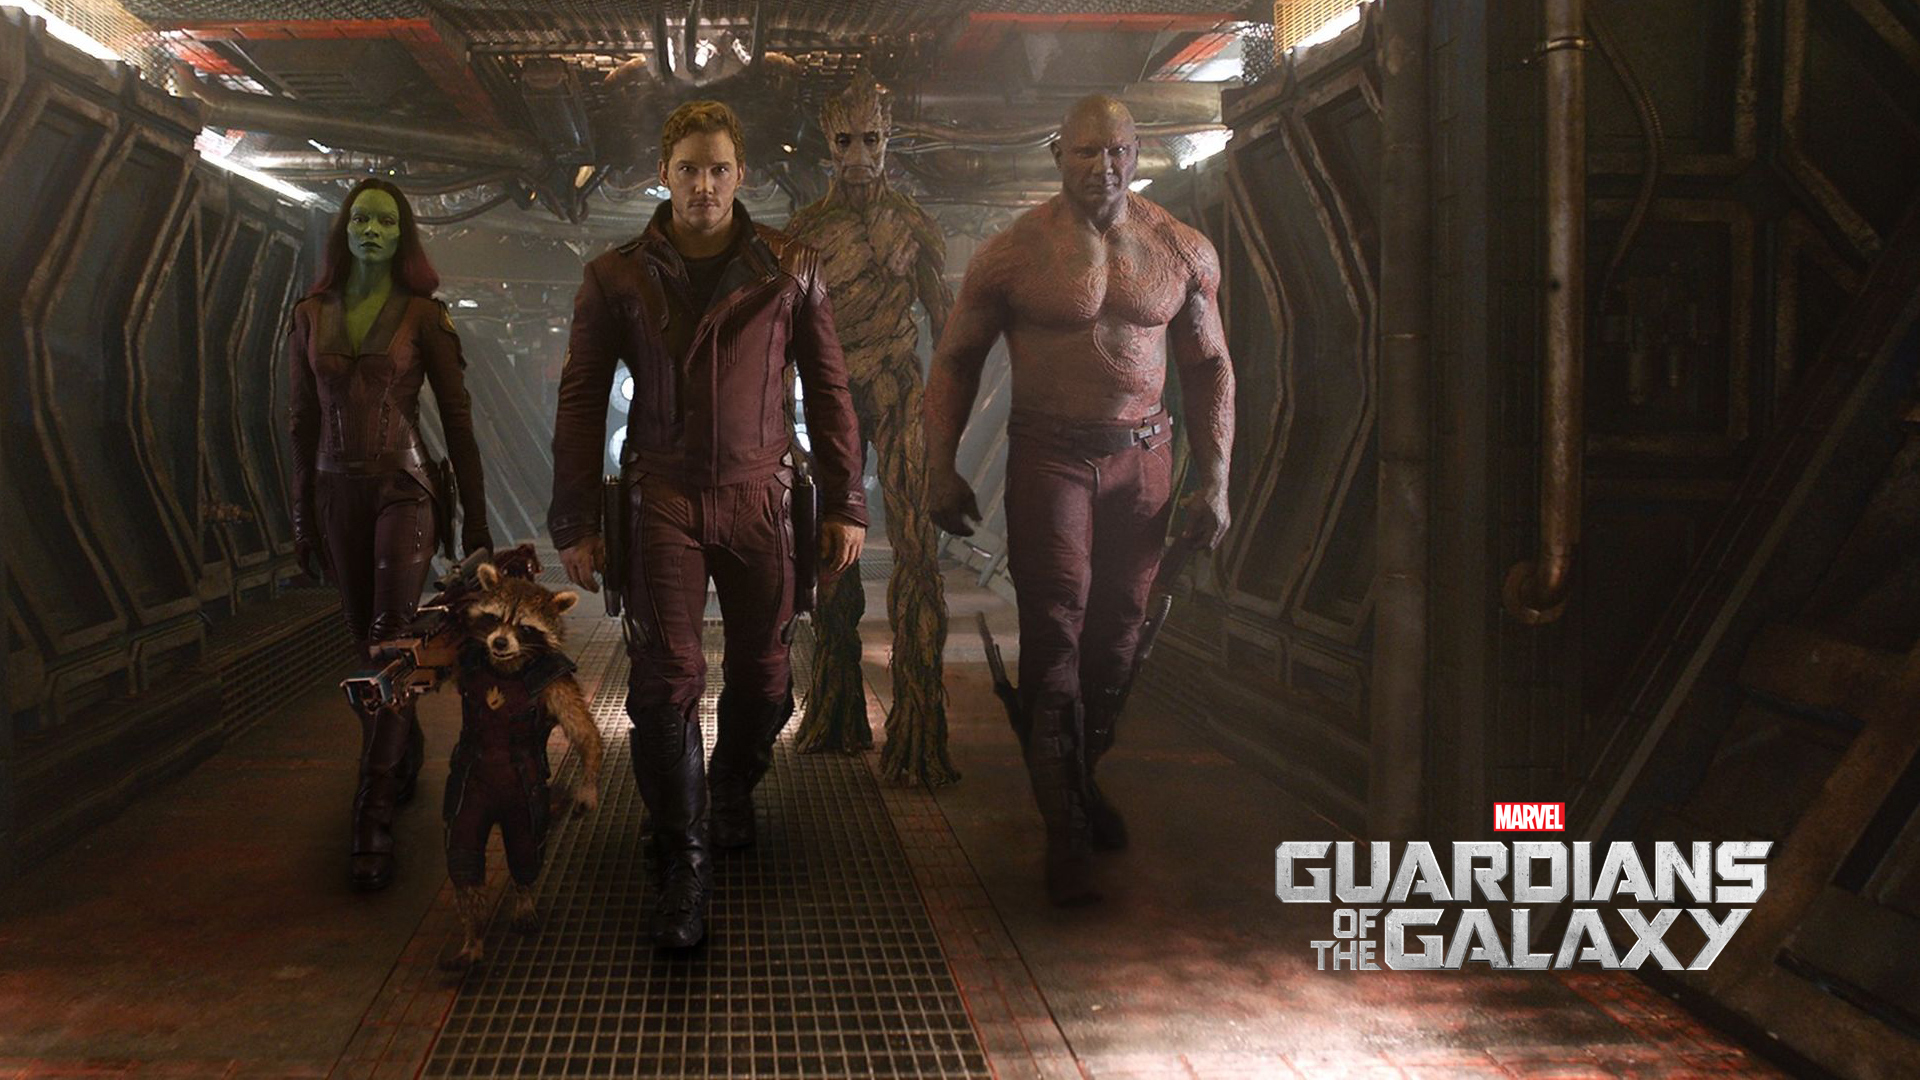 download Guardians of the Galaxy free online